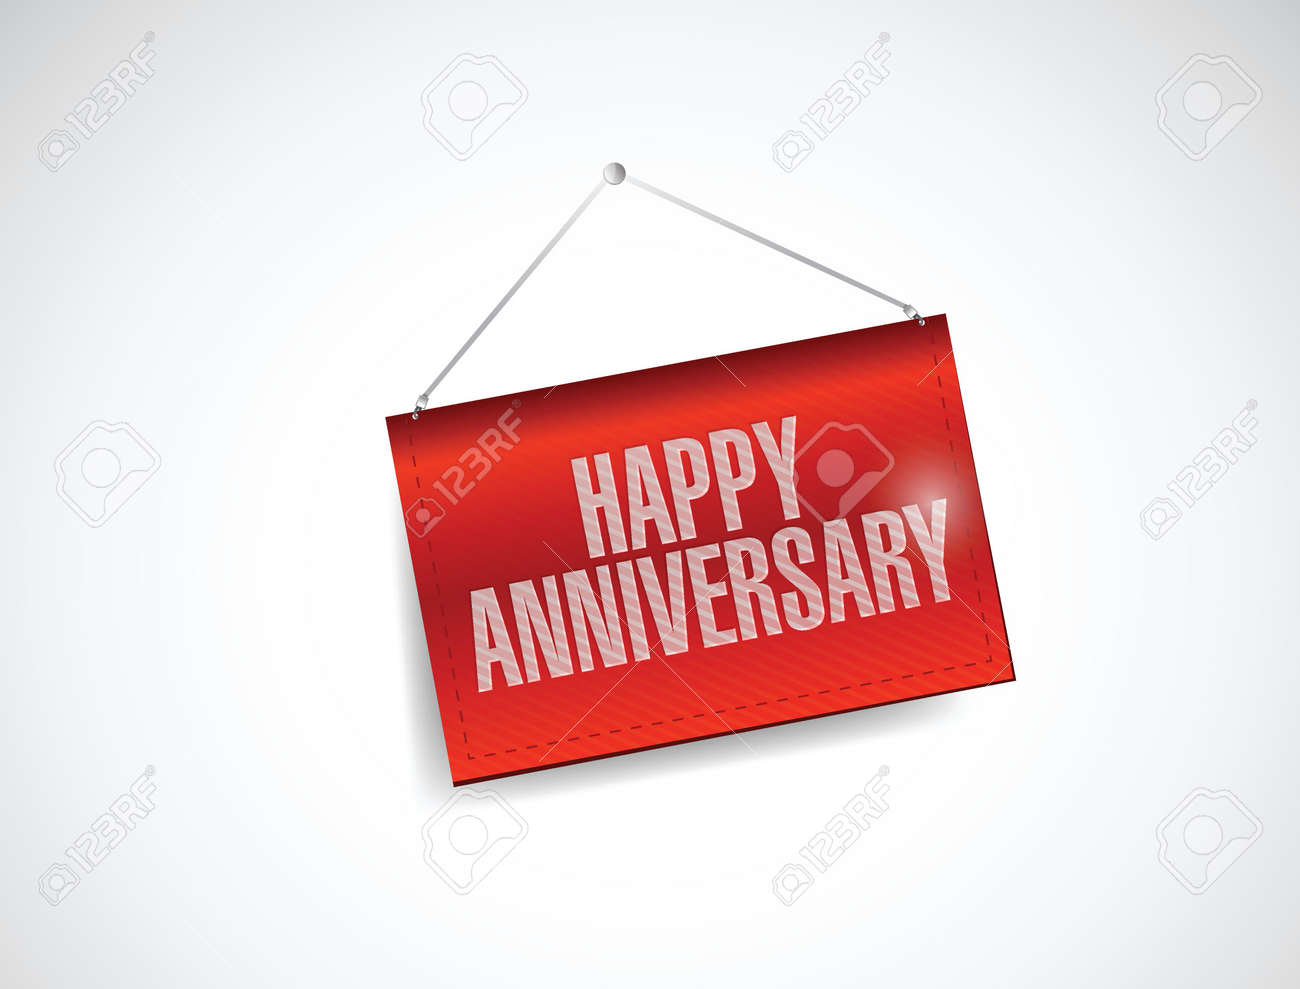 Twentieth year anniversary illustration download free vector art